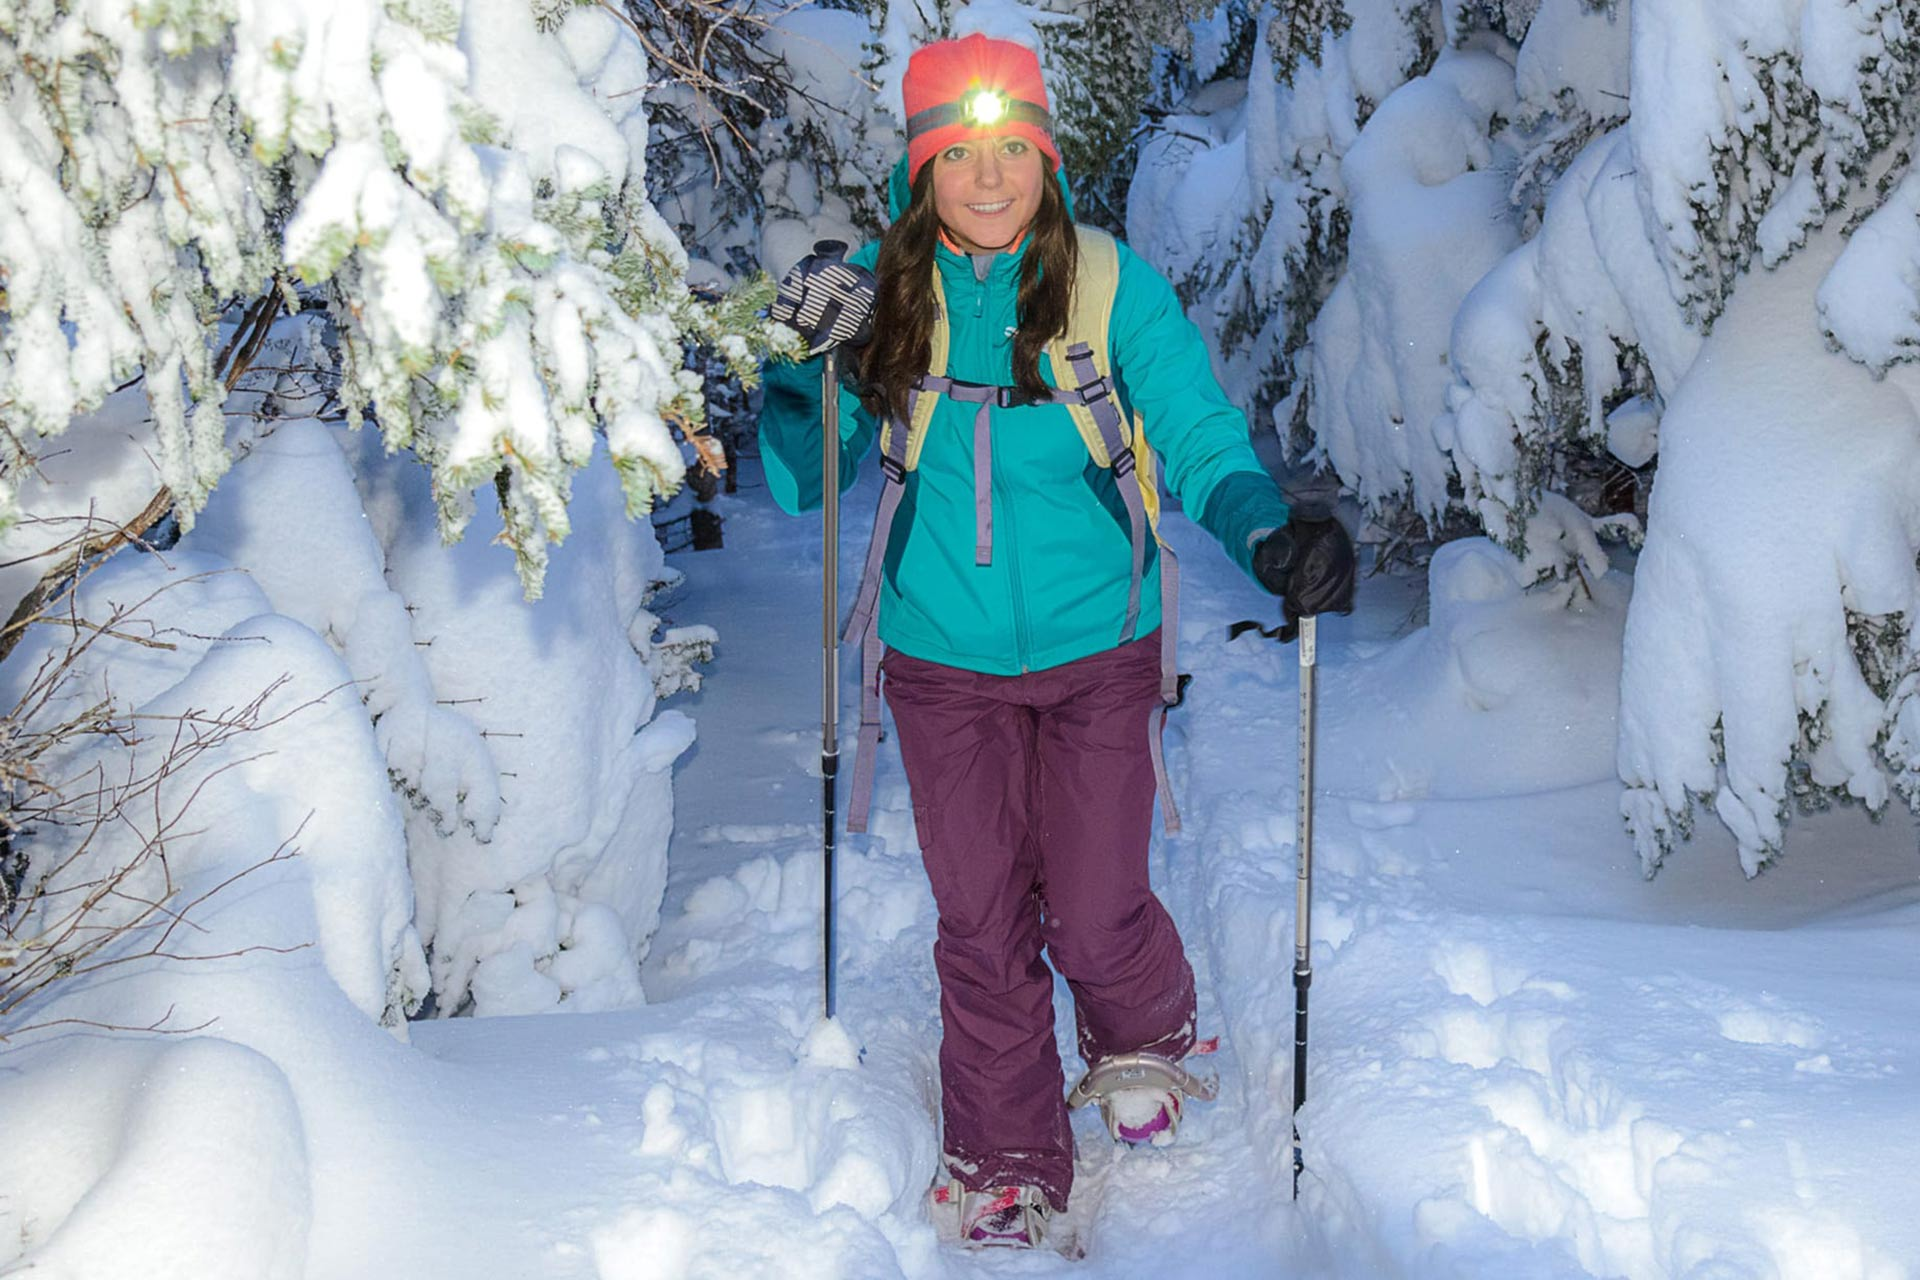 A young woman on a snowshoeing hike at Stratton in Vermont.